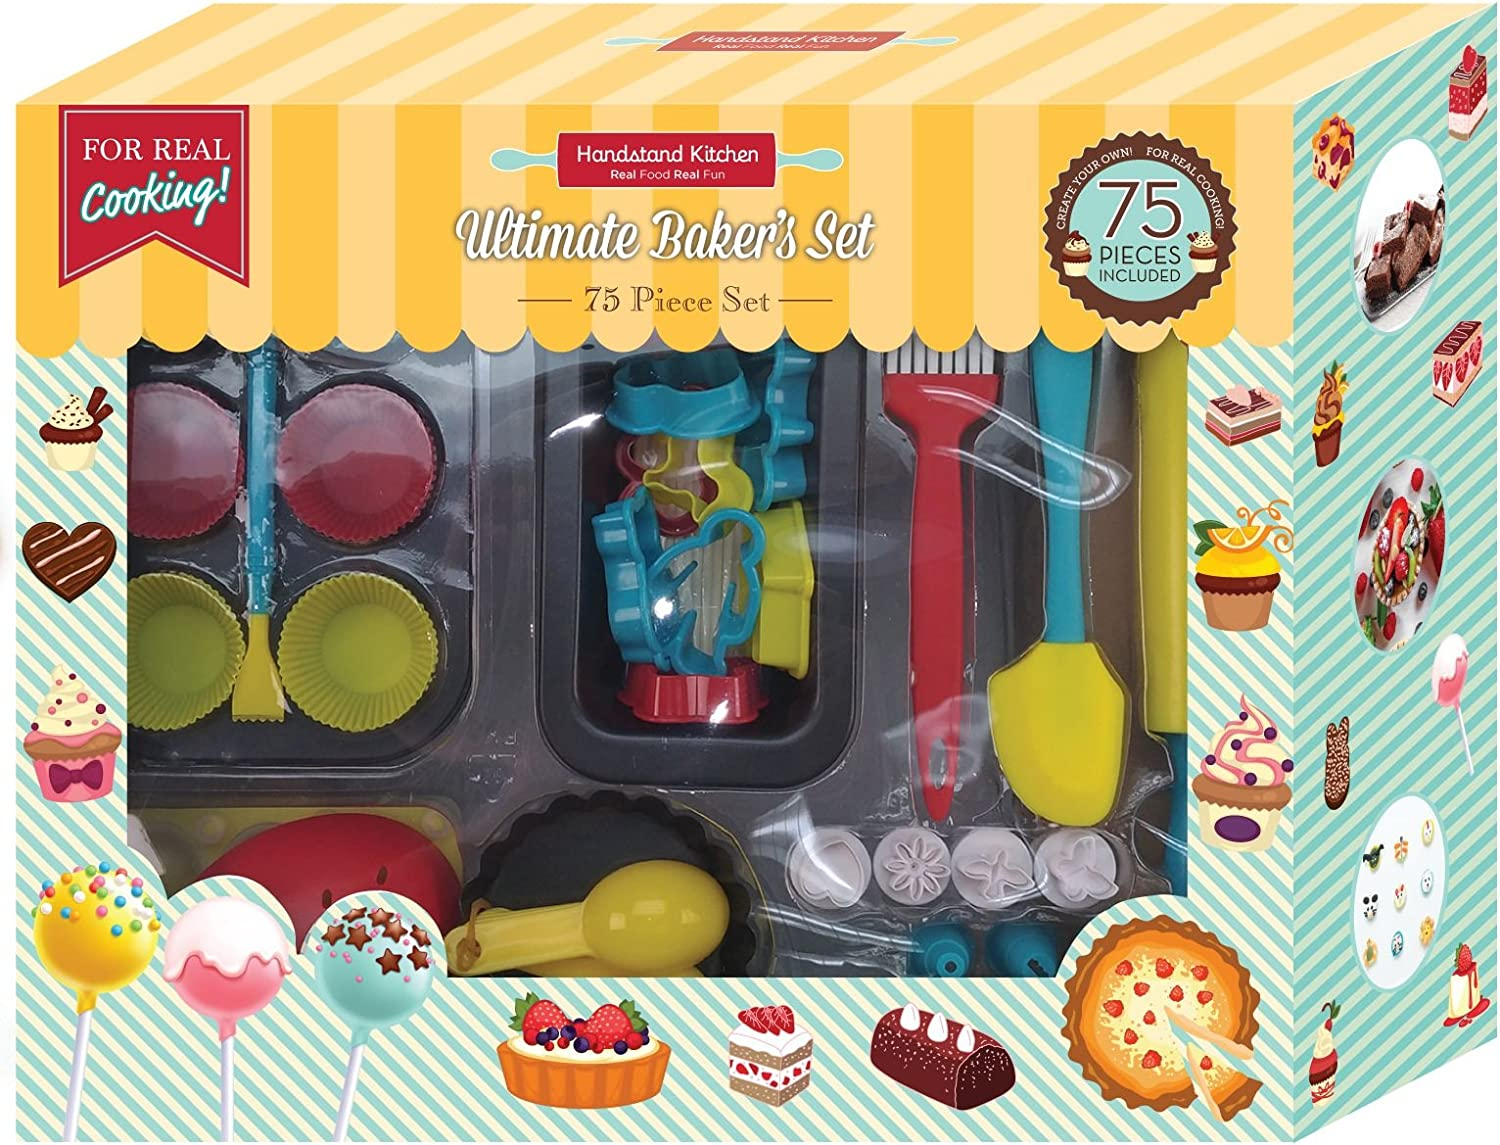 Handstand Kitchen 75-piece Ultimate Real Baking Set with Recipes for Kids